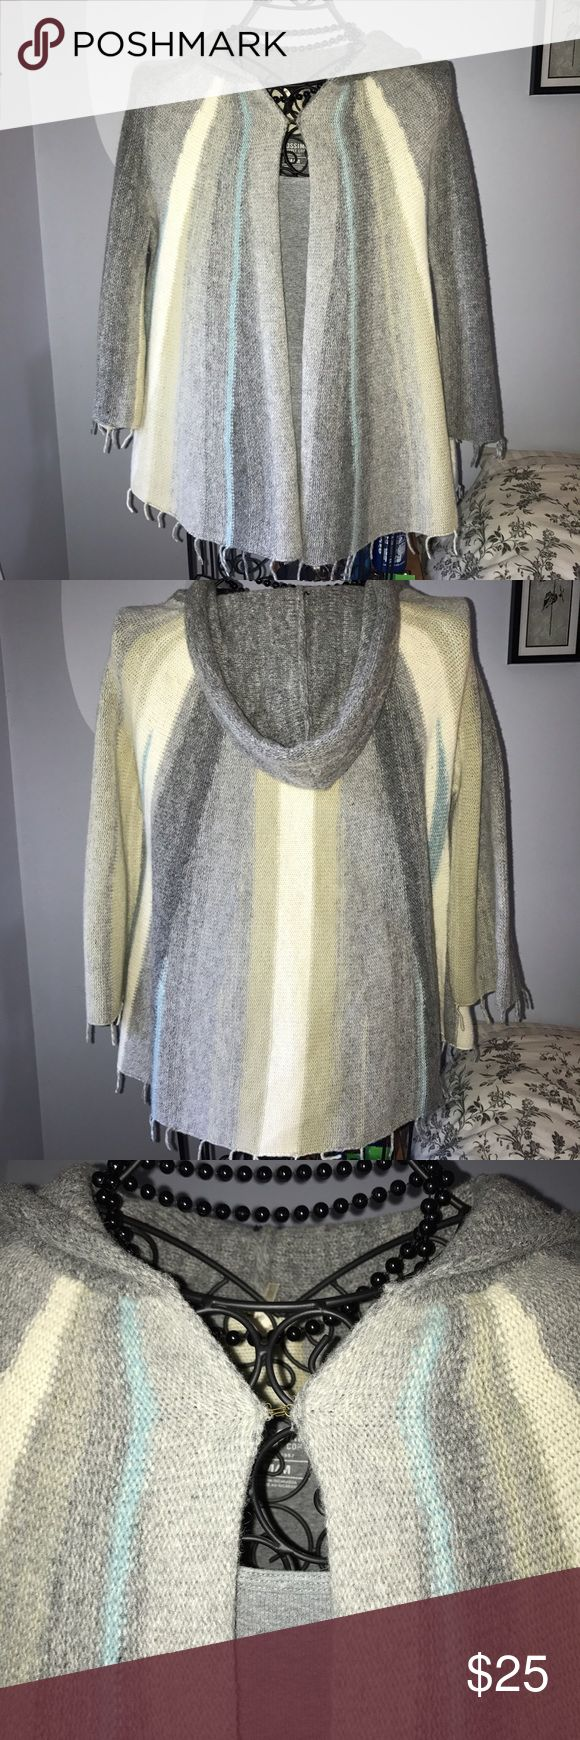 Free People striped wool 3/4 sleeve sweater cape M Super cute Free People striped wool hooded cape with 3/4 sleeves. Has hook closure at base of neckline. Wool/Nylon blend. Perfect condition! Size Medium. Free People Sweaters Shrugs & Ponchos